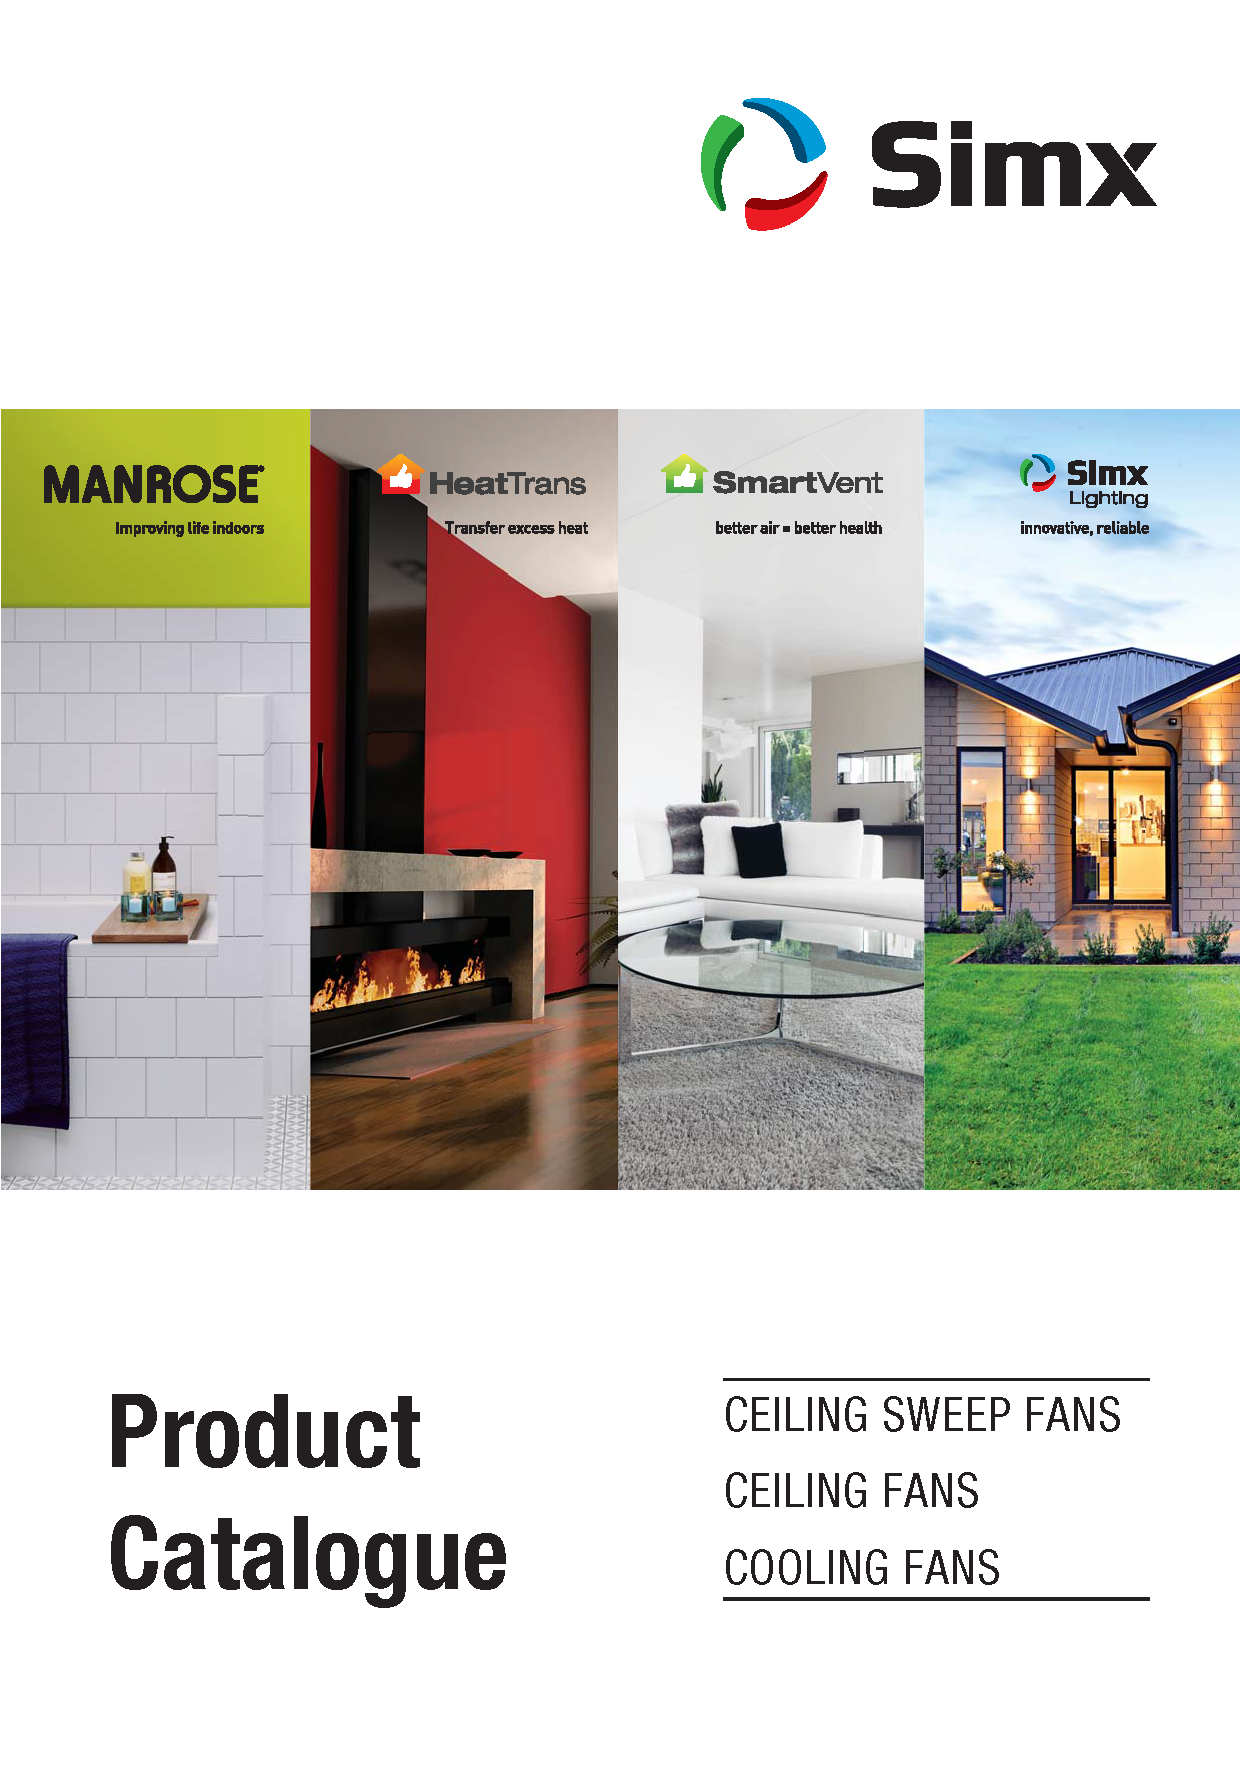 Ceiling Sweep Fans and Cooling Fans Catalogue